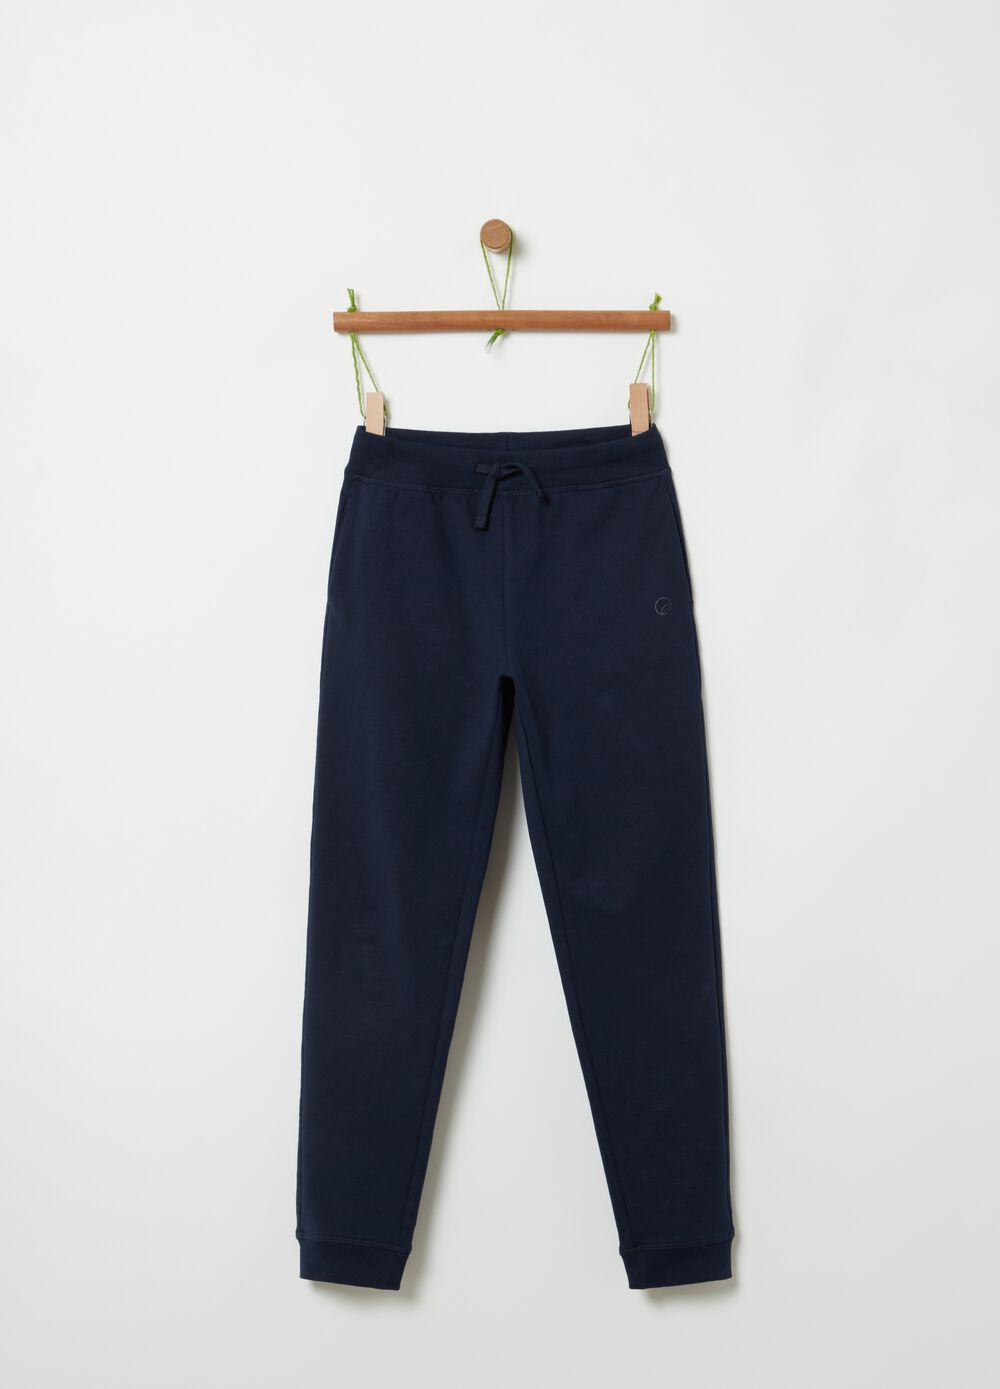 Stretch cotton joggers with pockets